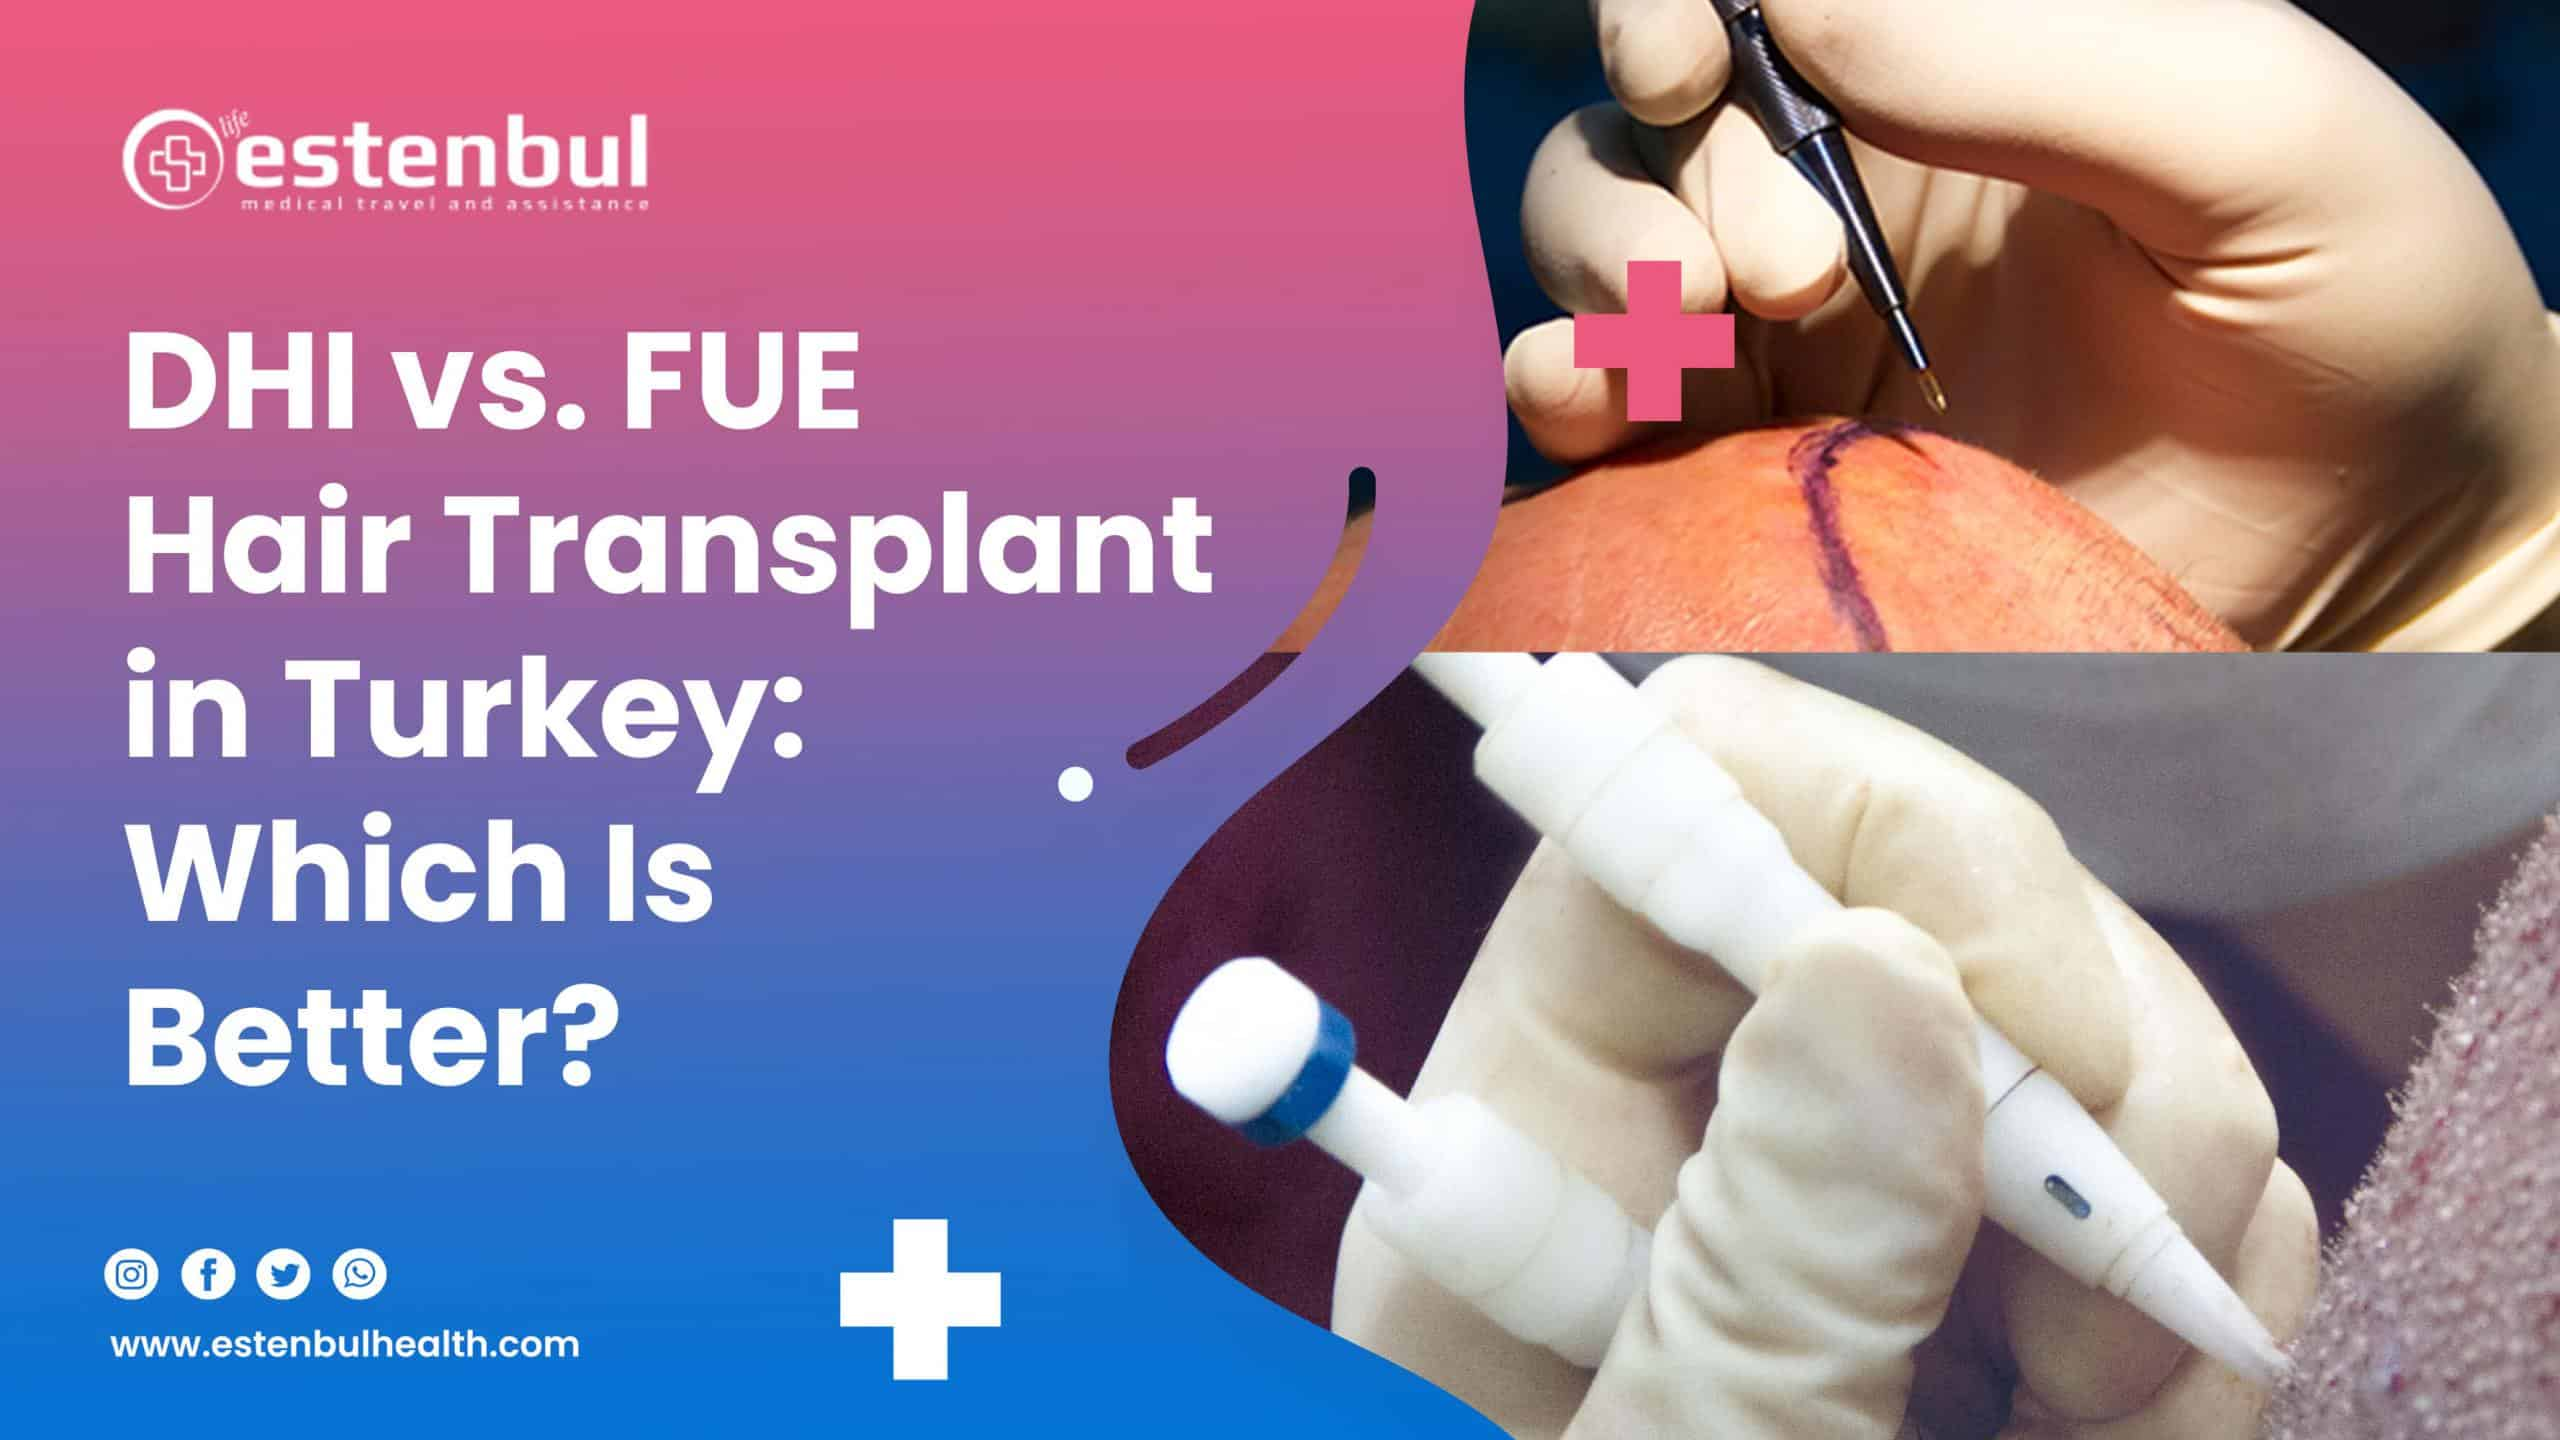 dhi vs. fue hair transplant in turkey which is better